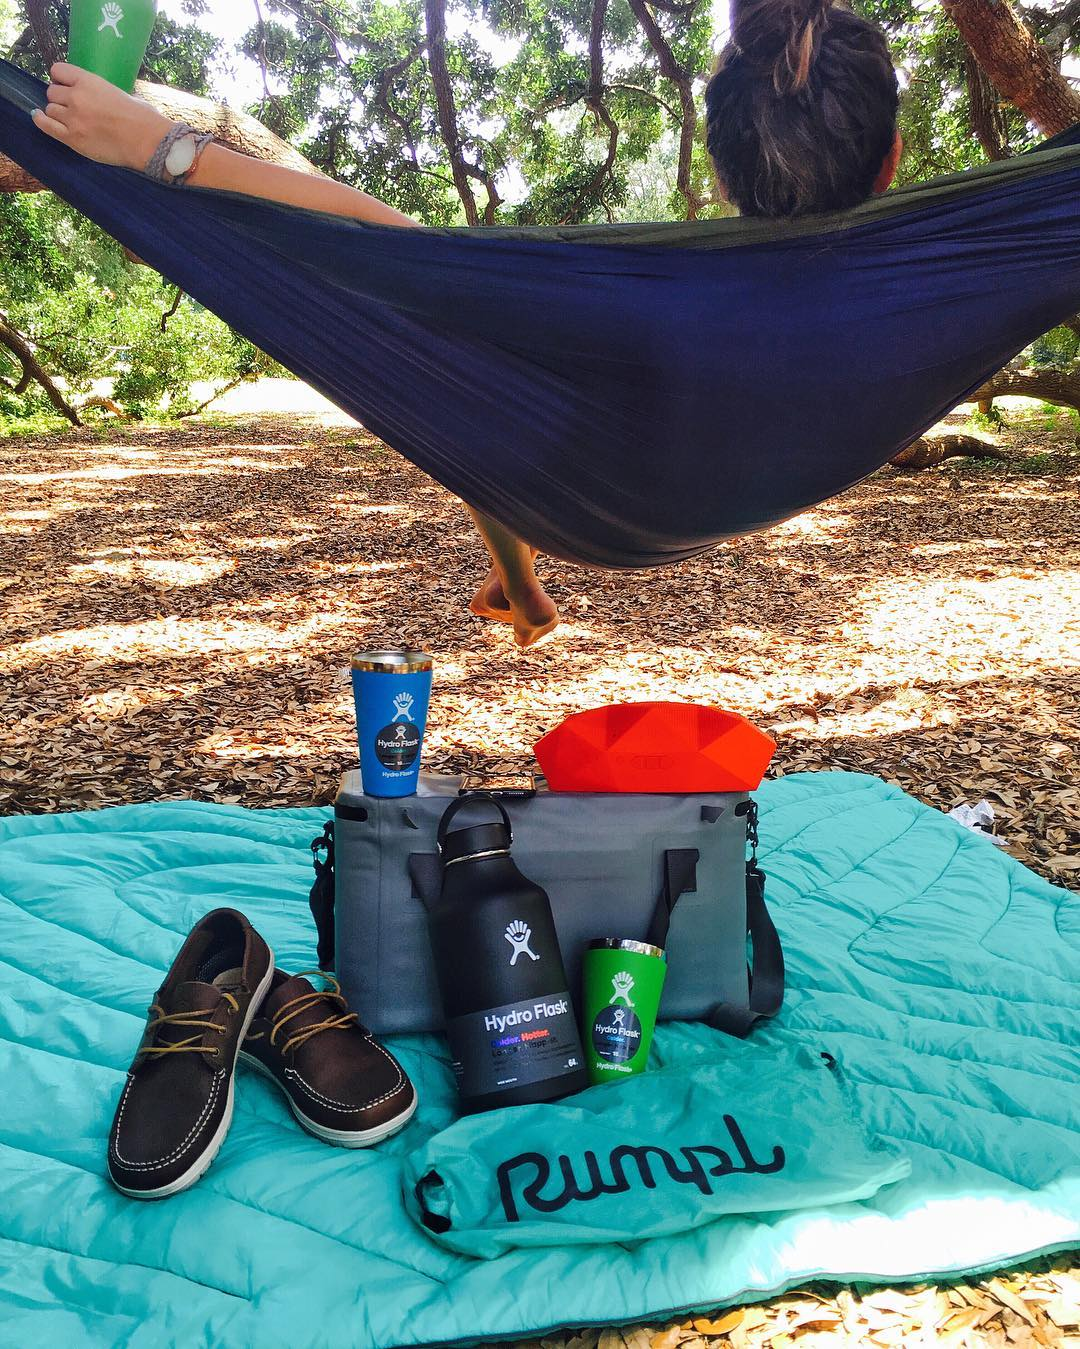 GIVEAWAY! To celebrate the longest day of the year, we are giving away an awesome #summersolstice prize package that will make you want to take your party outdoors all day long. To enter, all you need to do is:  Follow @hydroflask, @enohammocks,...